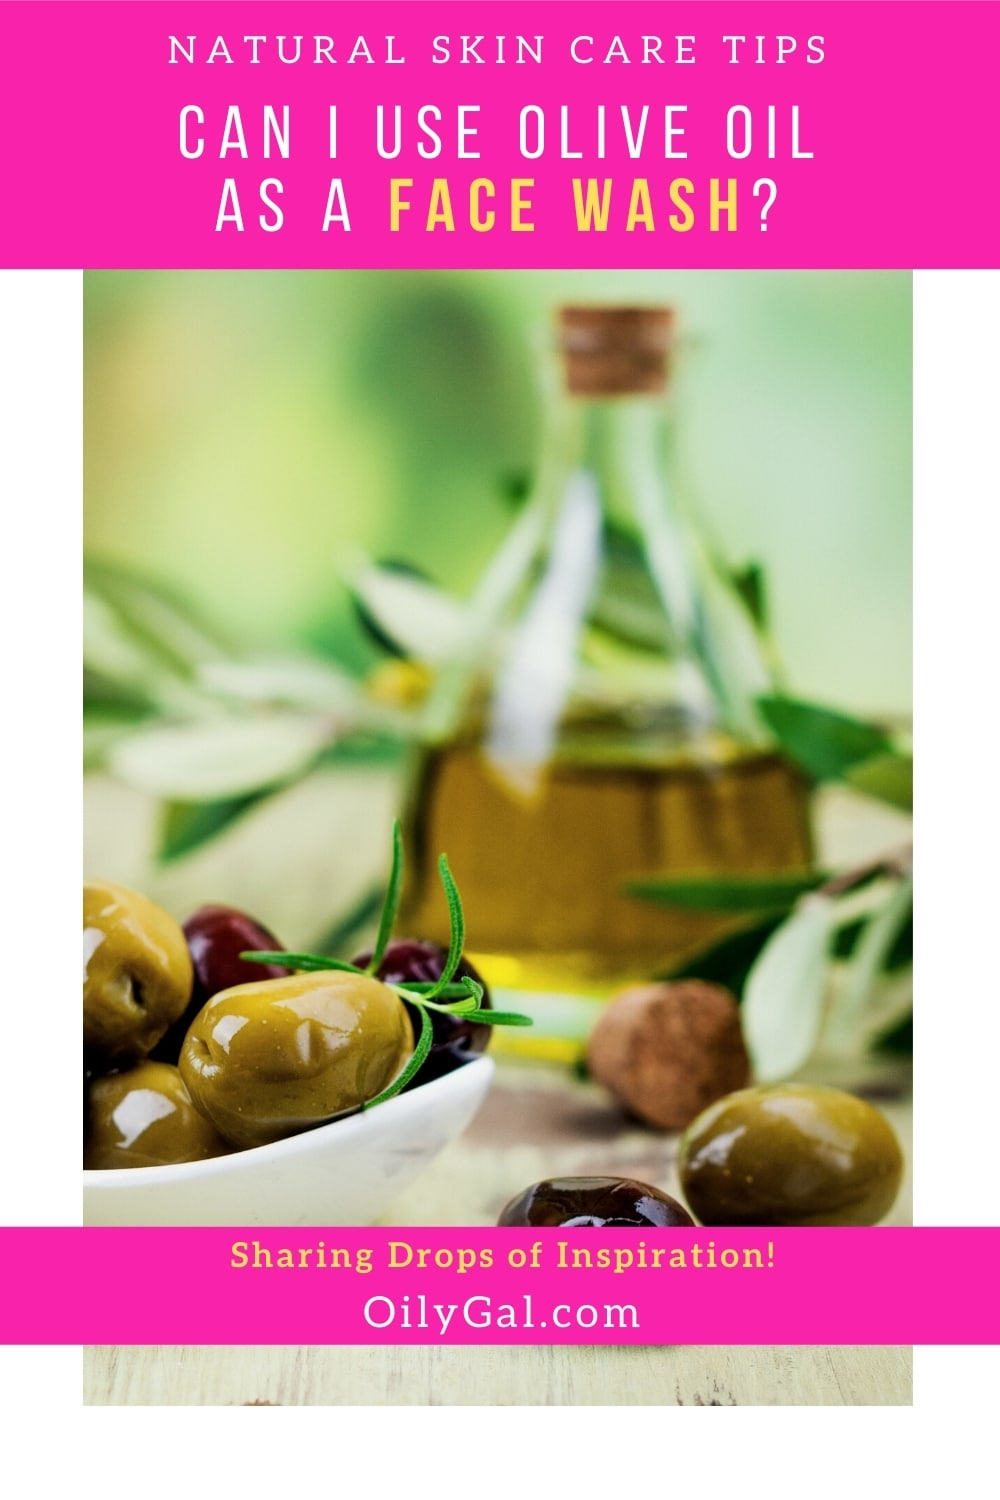 using olive oil for washing face